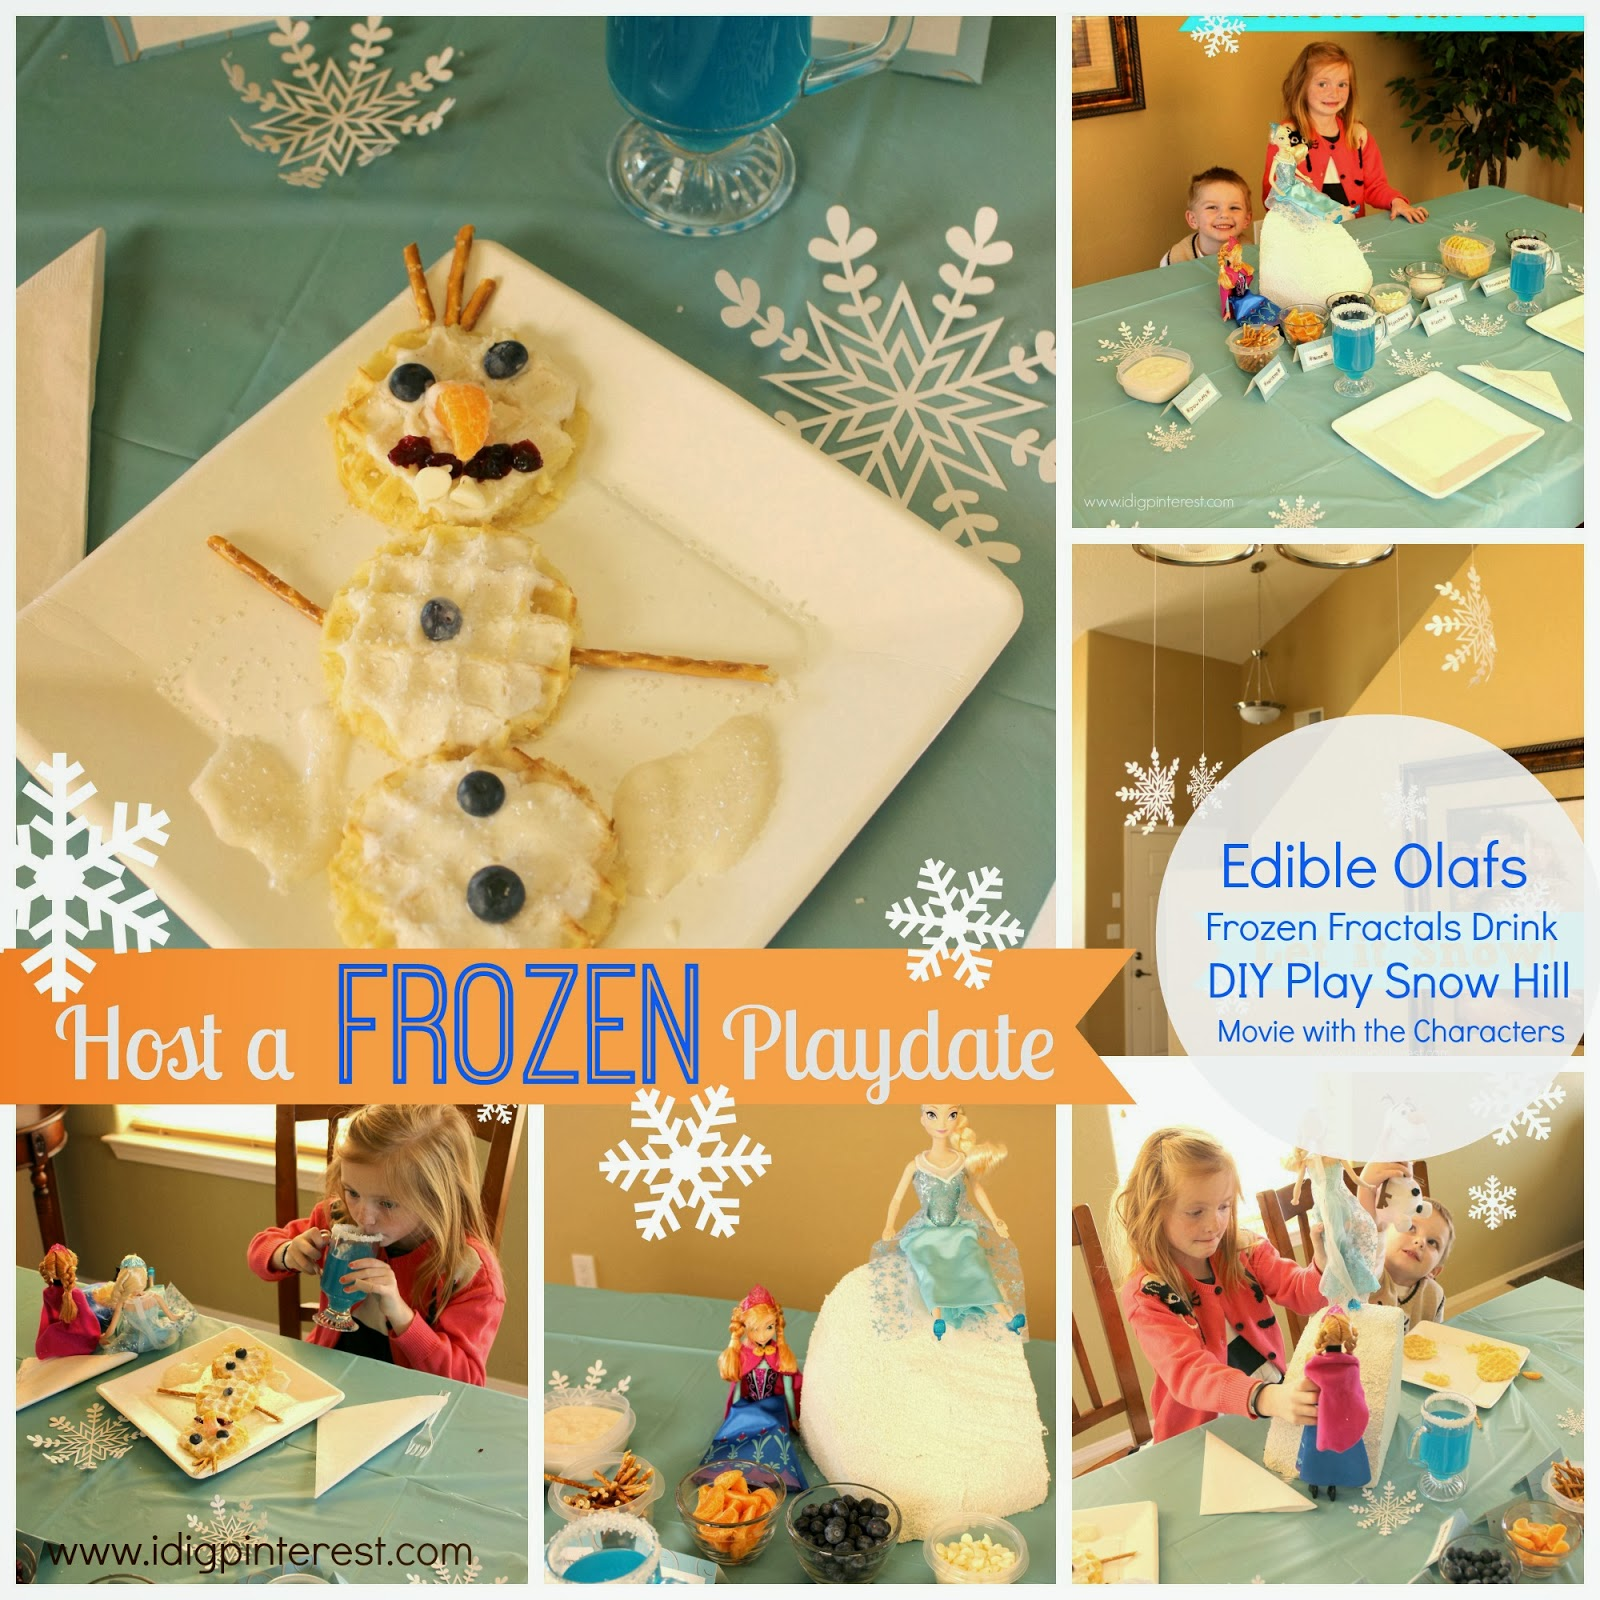 Host a Frozen Playdate by I Dig Pinterest